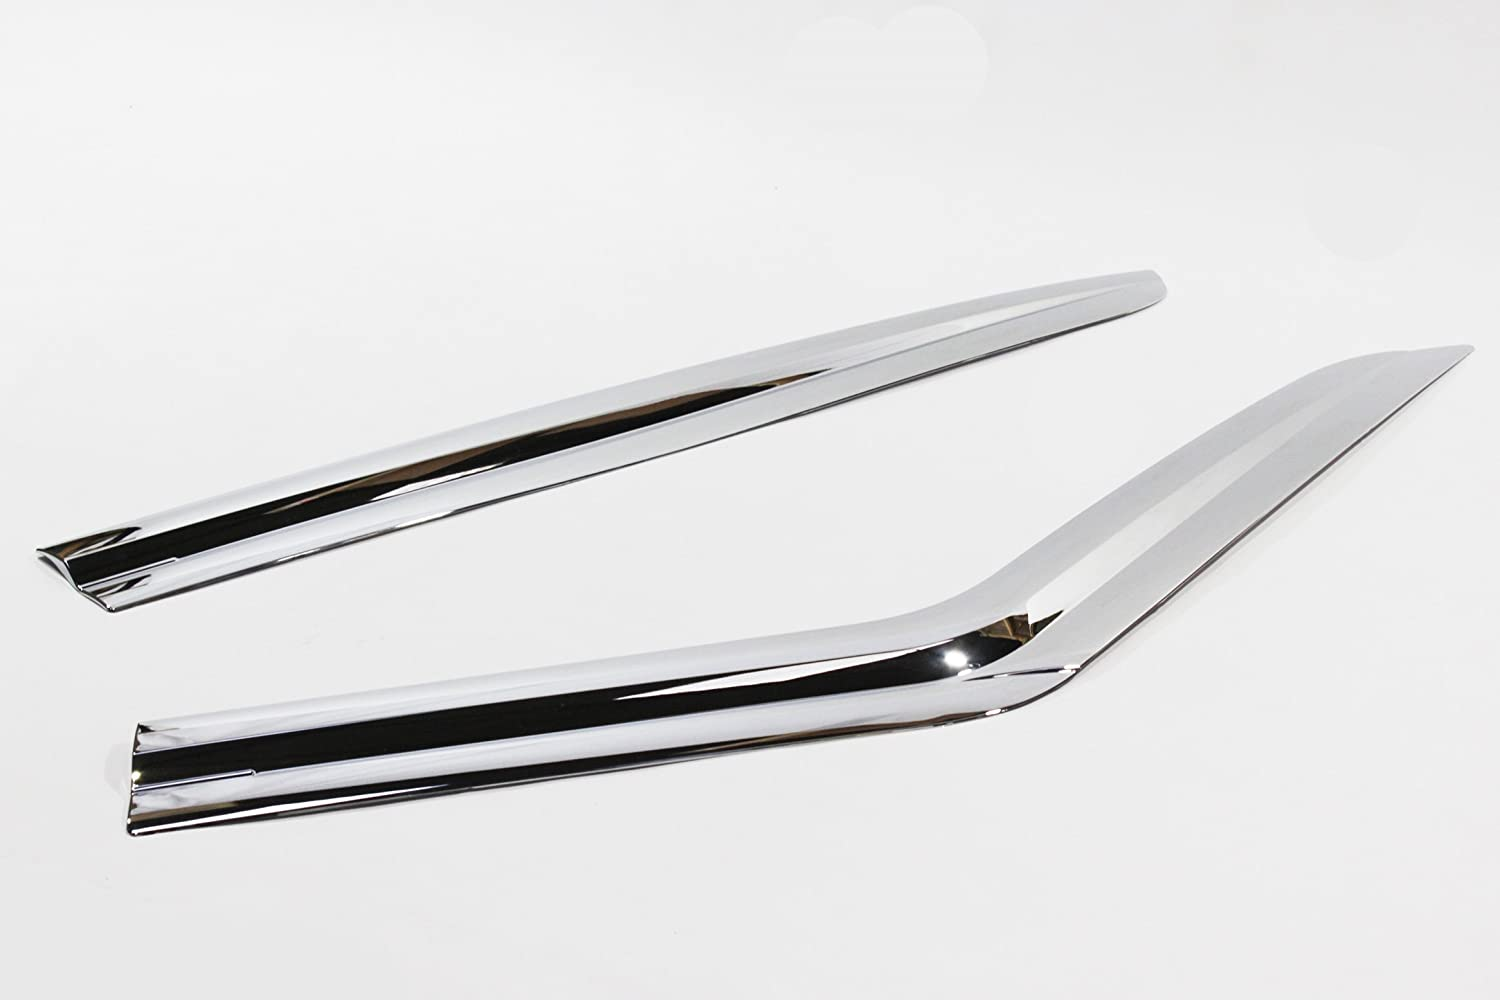 Autoclover Chrome Wind Deflectors Set for Land Rover Discovery 3 /& 4 4 pieces